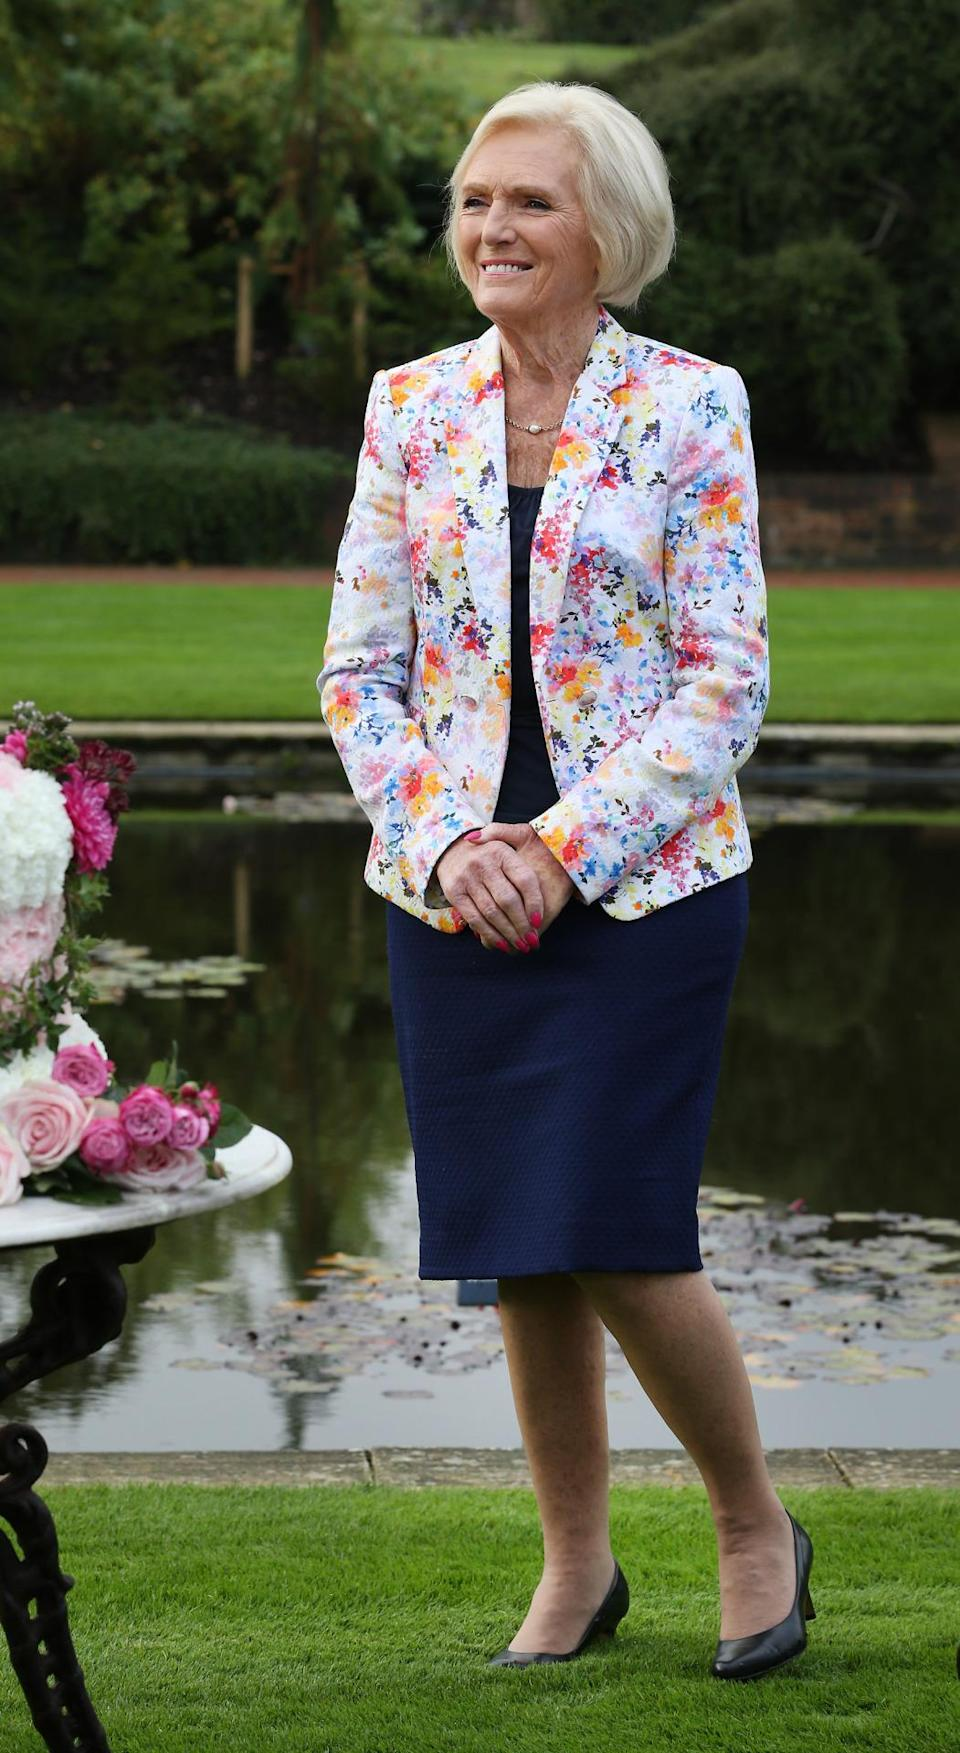 <p>For a day at the RHS Flower Show, Mary opted for a lighter coloured floral blazer, bringing a summery kick to her outfit. </p><p><i>[Photo: Getty]</i></p>